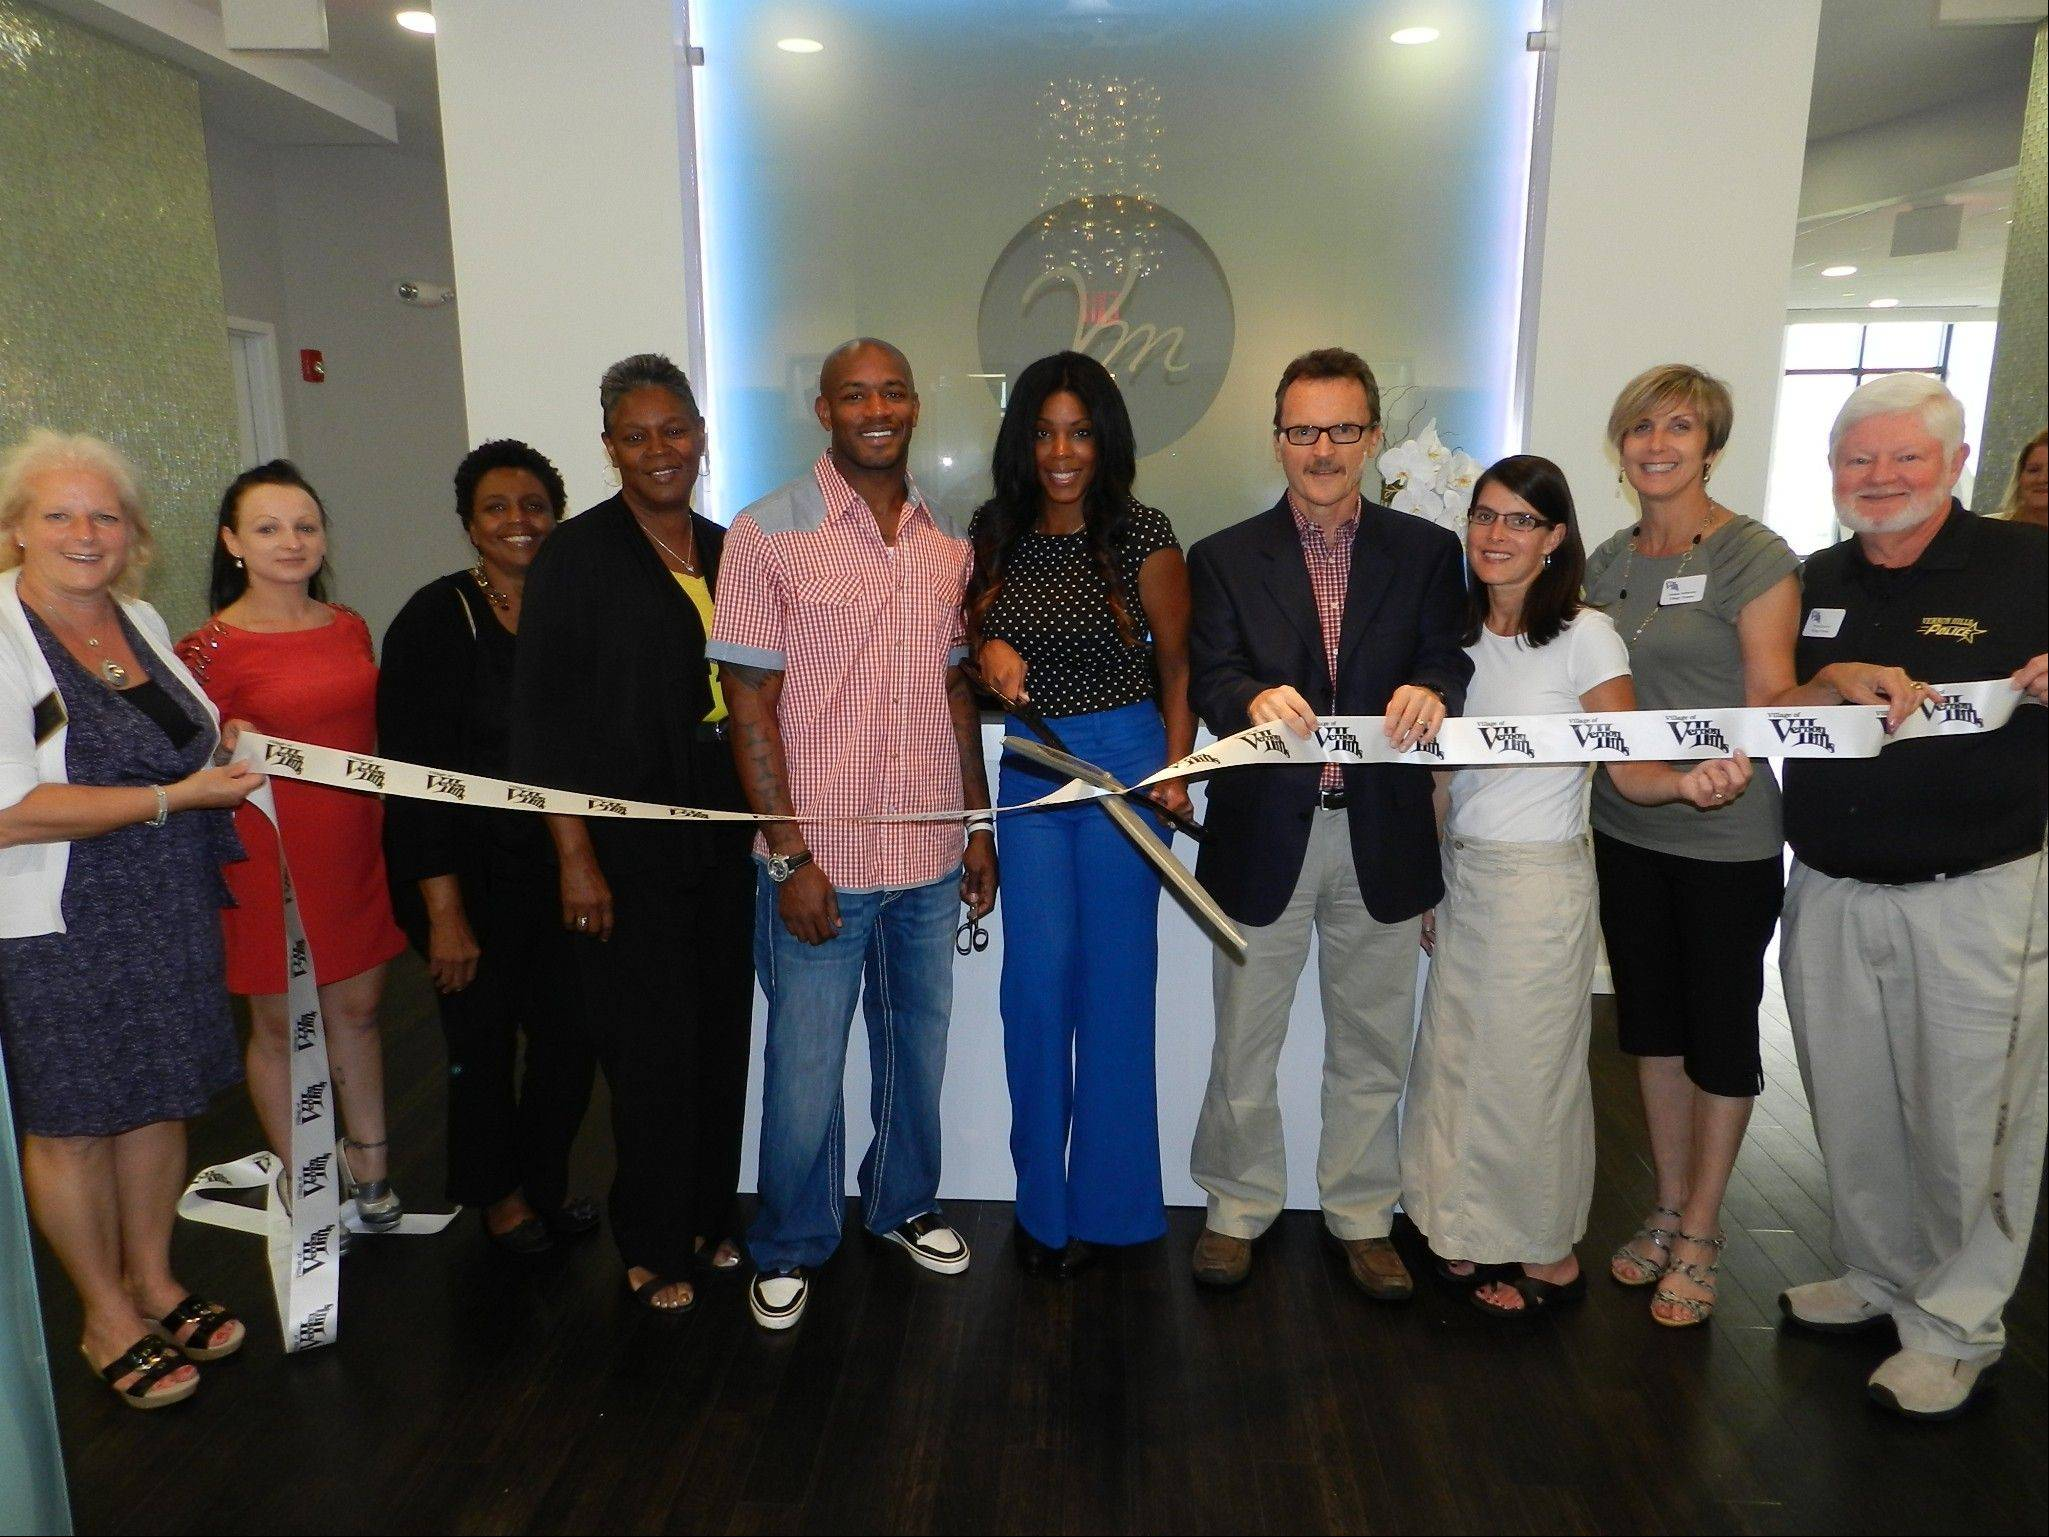 Venus vs. Marz Spa owners Brandon and Ranee McGowan, at center, cut the ribbon celebrating the recent grand opening of the luxury spa lounge in Vernon Hills, along with, from left, GLMV Chamber Executive Director Alese Campbell, Mike Allison, village of Vernon Hills, and other business leaders and community officials.